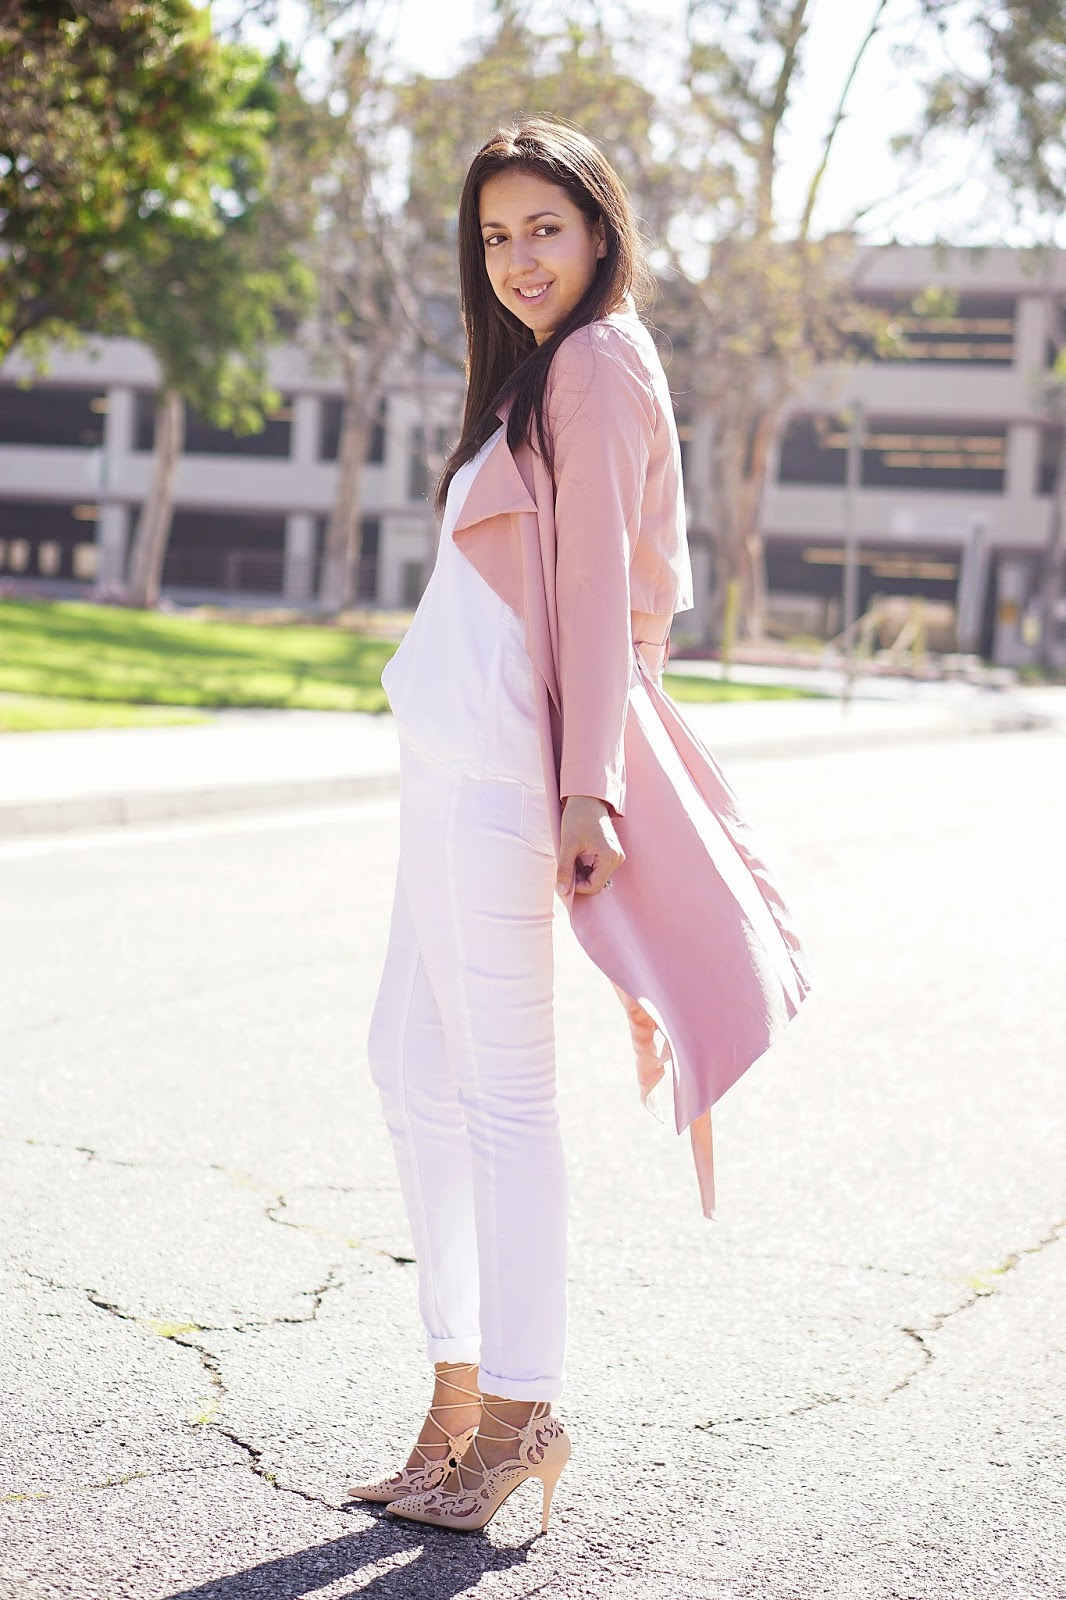 White Mango Cami, MNG by Mango, JCPenney, Arizona Skinny Jeans, White Jeans, Shoedazzle, Pink Trench Coat, Windsor Pink Trench Coat, Windsor, Neutral Outfit, Nude Laser Cut Heels, Christian Louboutin Inspired Heels, California Fall Fashion